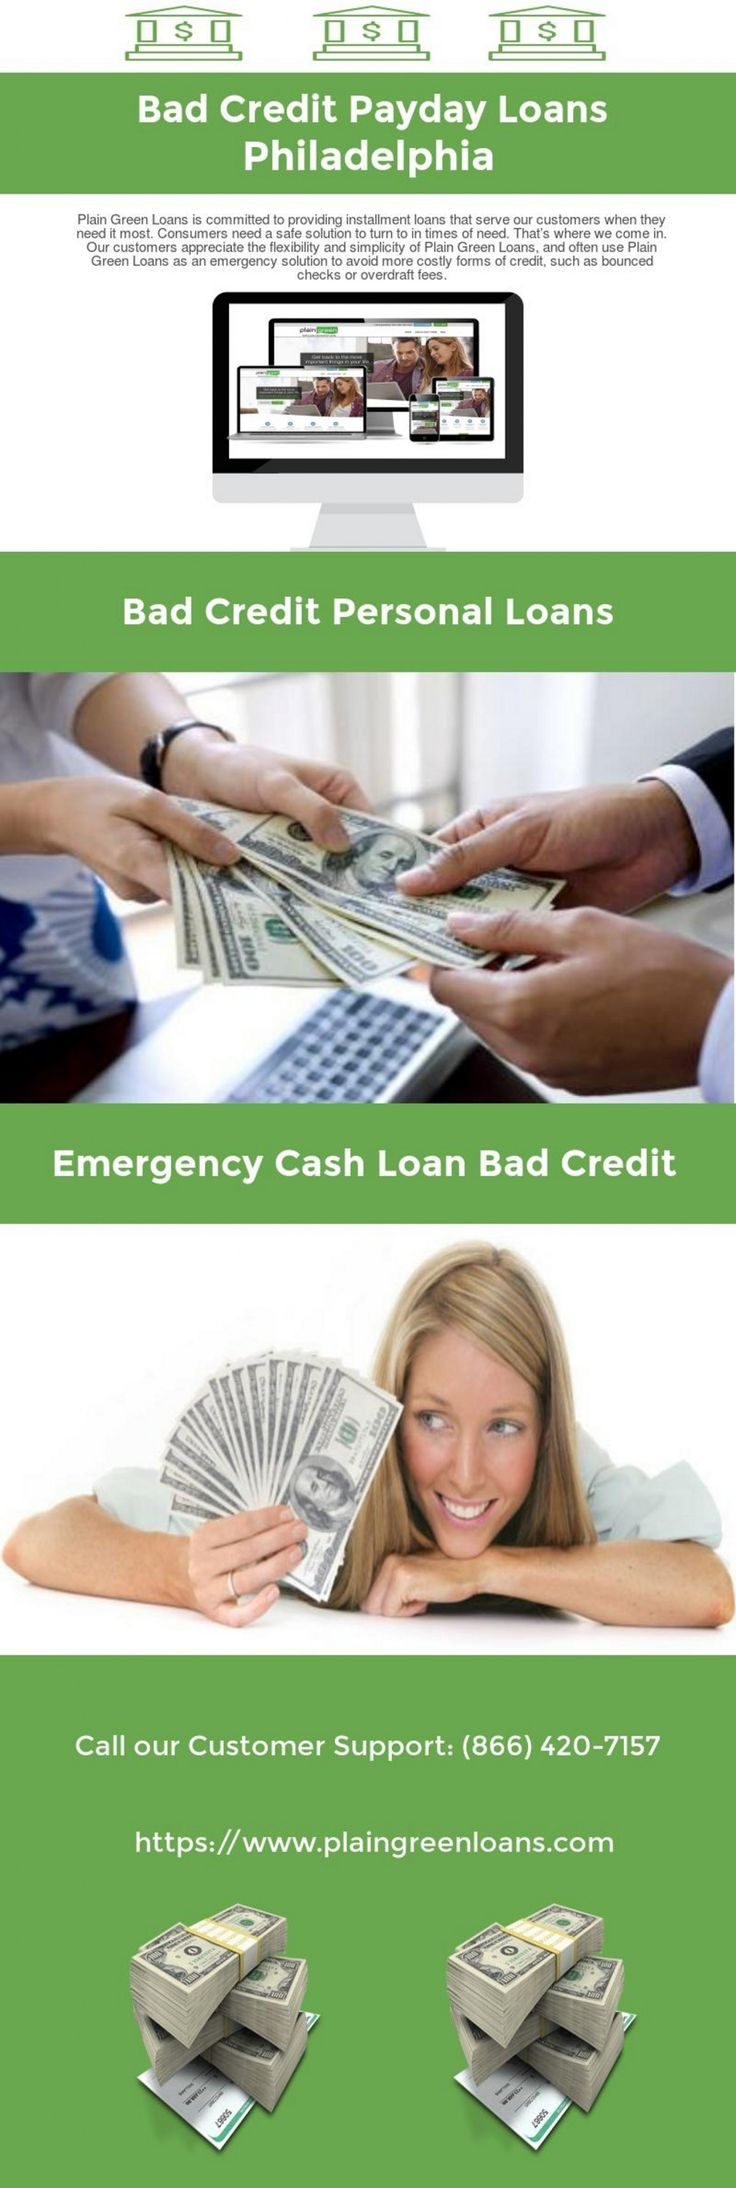 Bad Credit Payday Loans in Philadelphia Infographic